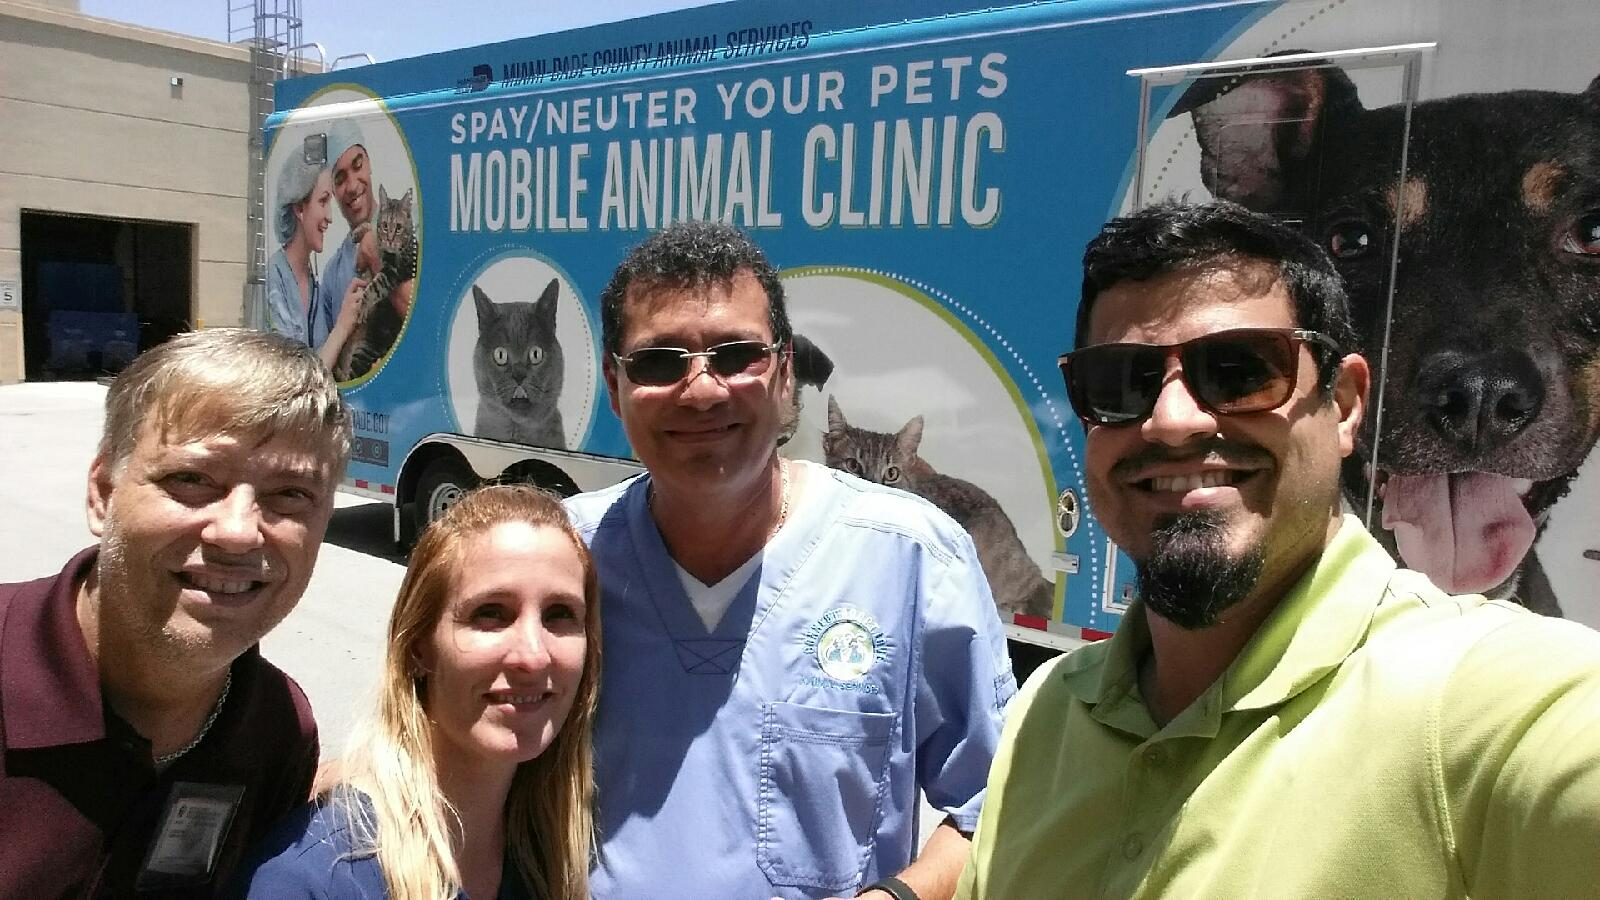 With vet technician staff of Miami Veterinary Foundation